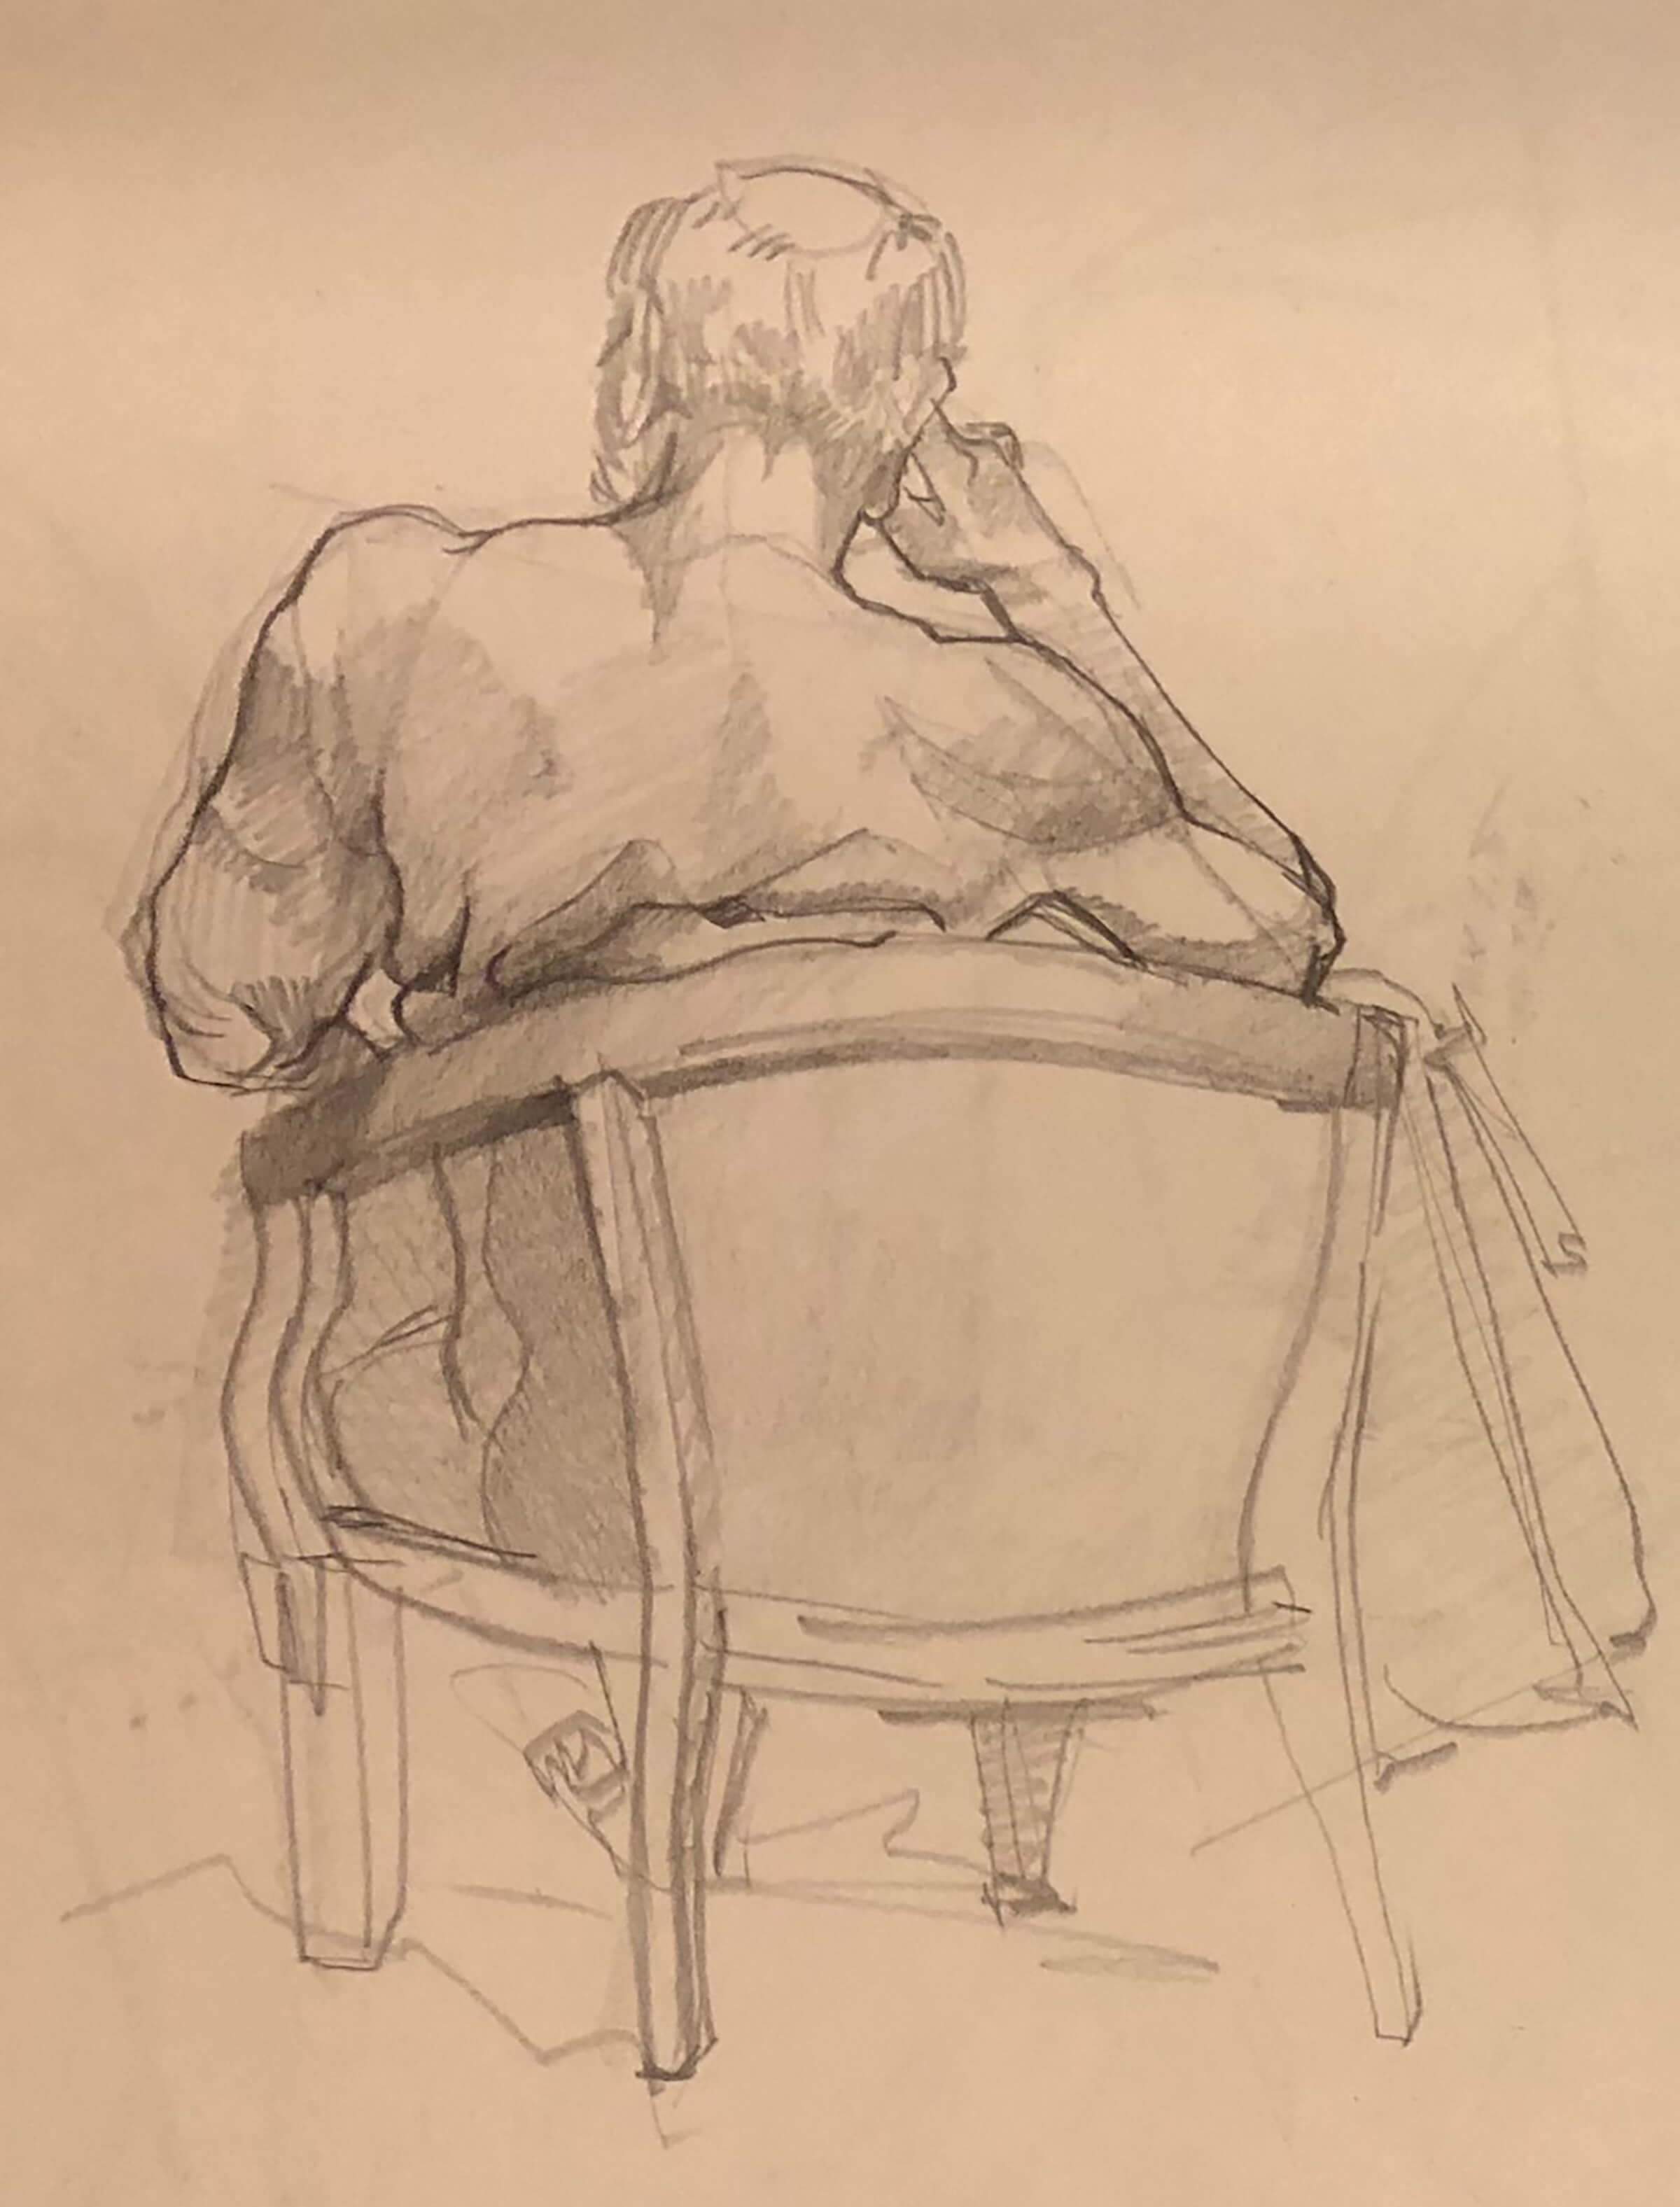 A sketch of a man sitting in a chair, his hand to his head